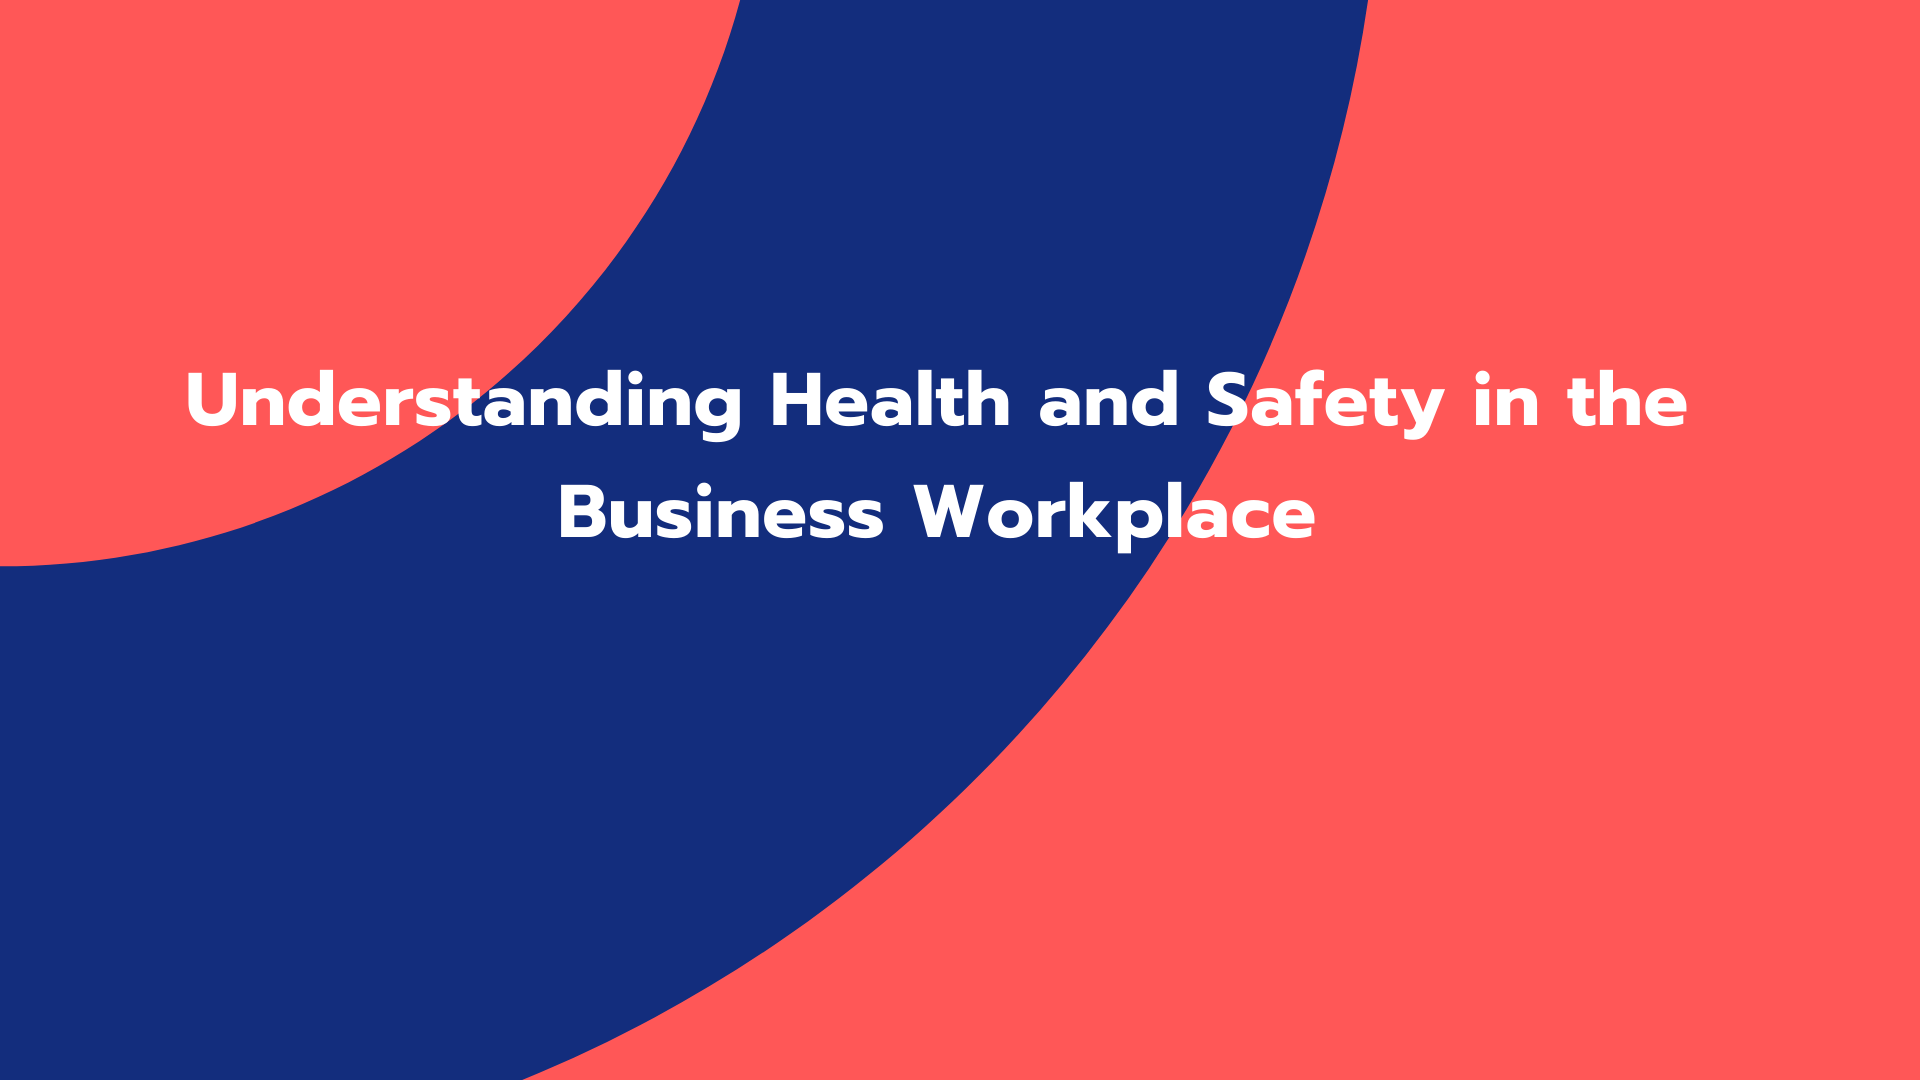 Understanding Health and Safety in the Business Workplace